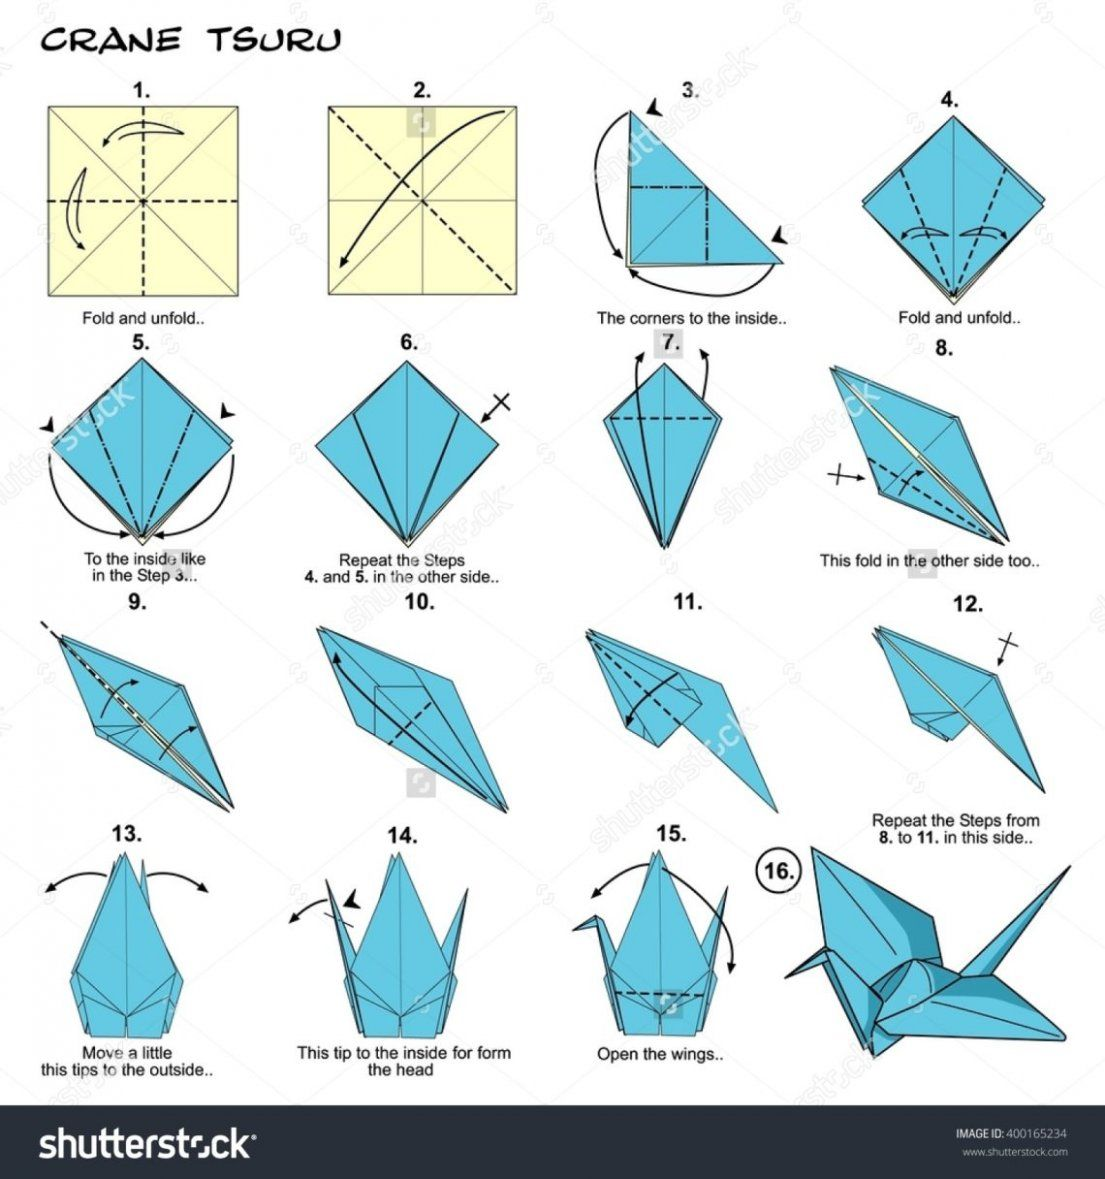 27 Brilliant Photo Of Origami For Beginners Step By Step Origami For Beginners Step By Step Easy Or Origami Crane Tutorial Origami Easy Origami For Beginners